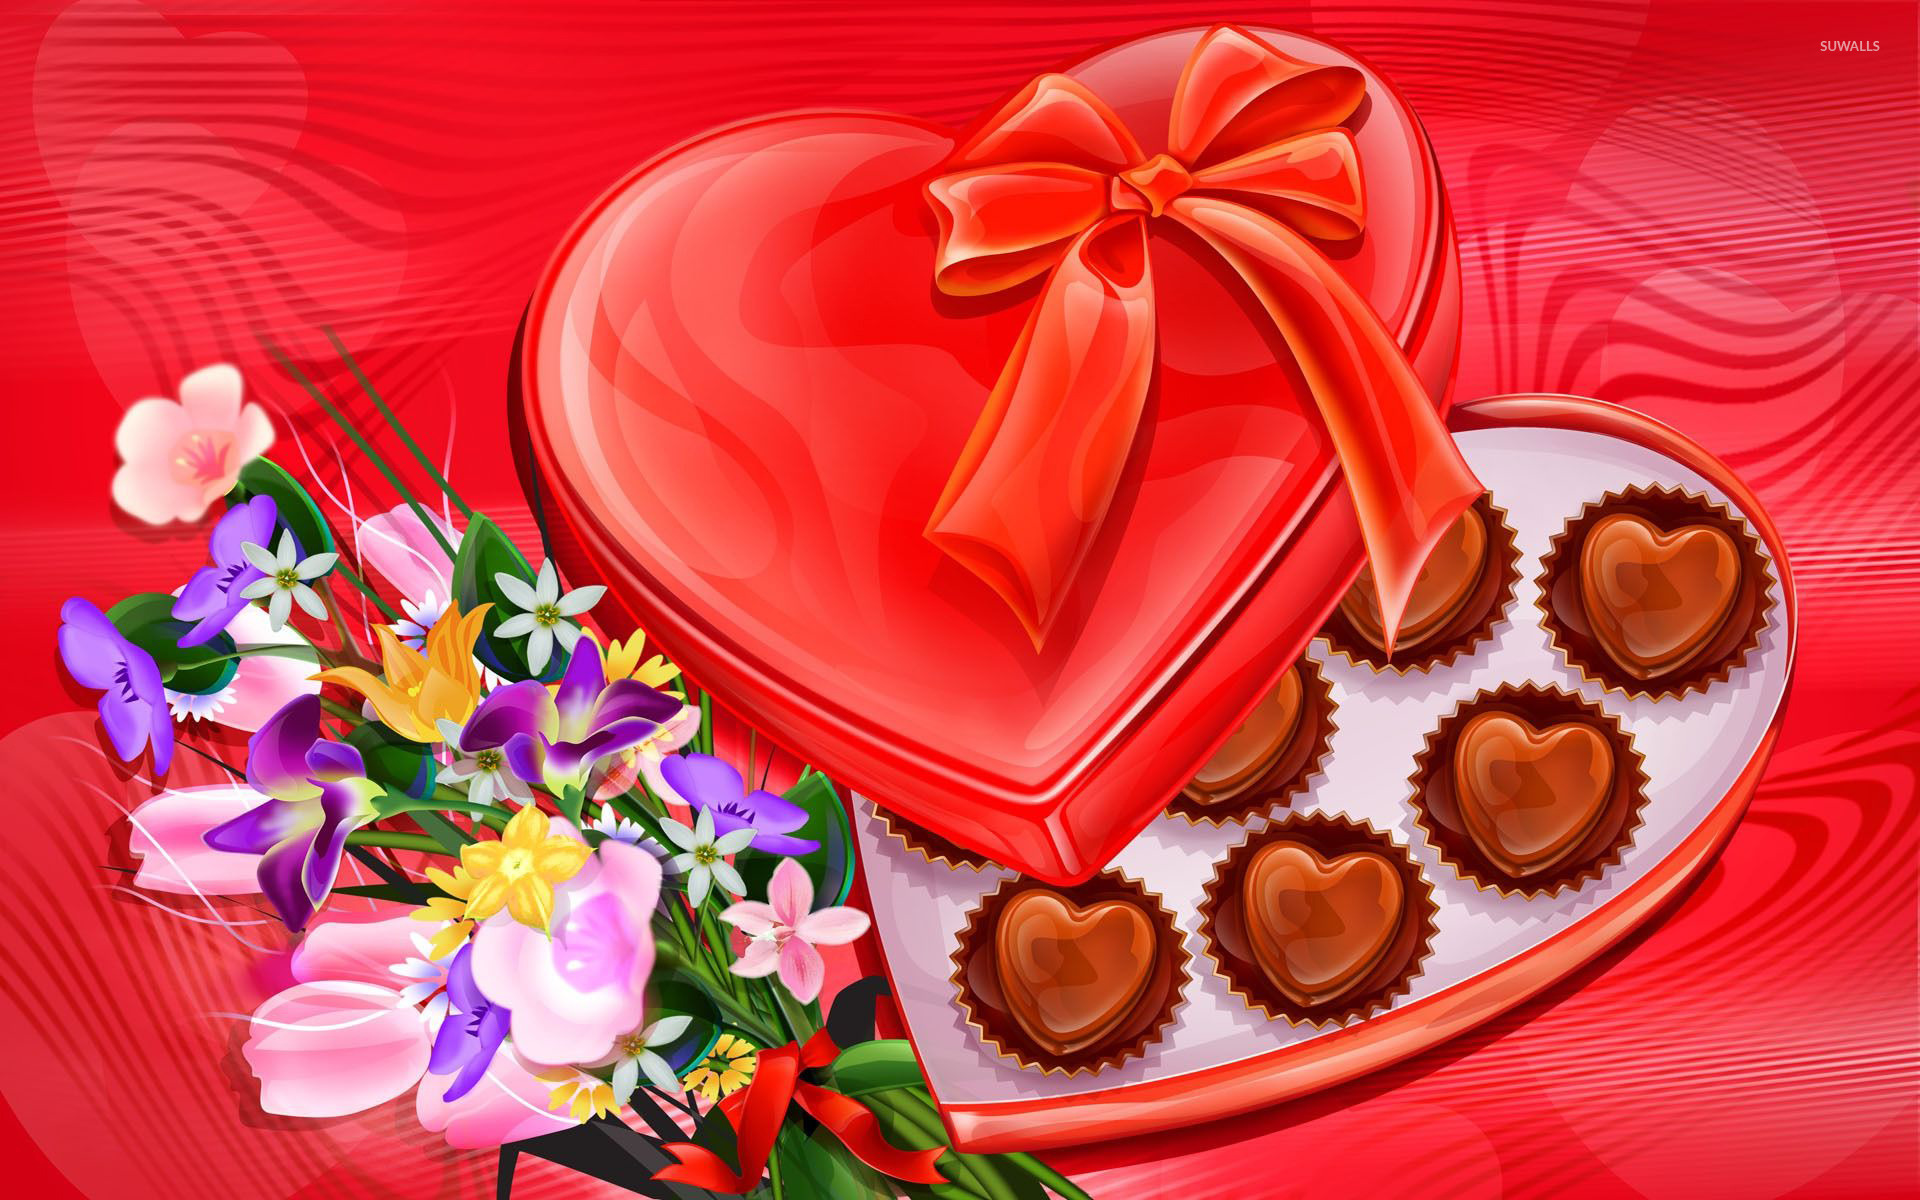 Funny Fall Wallpaper Heart Chocolates And Flowers Wallpaper Digital Art